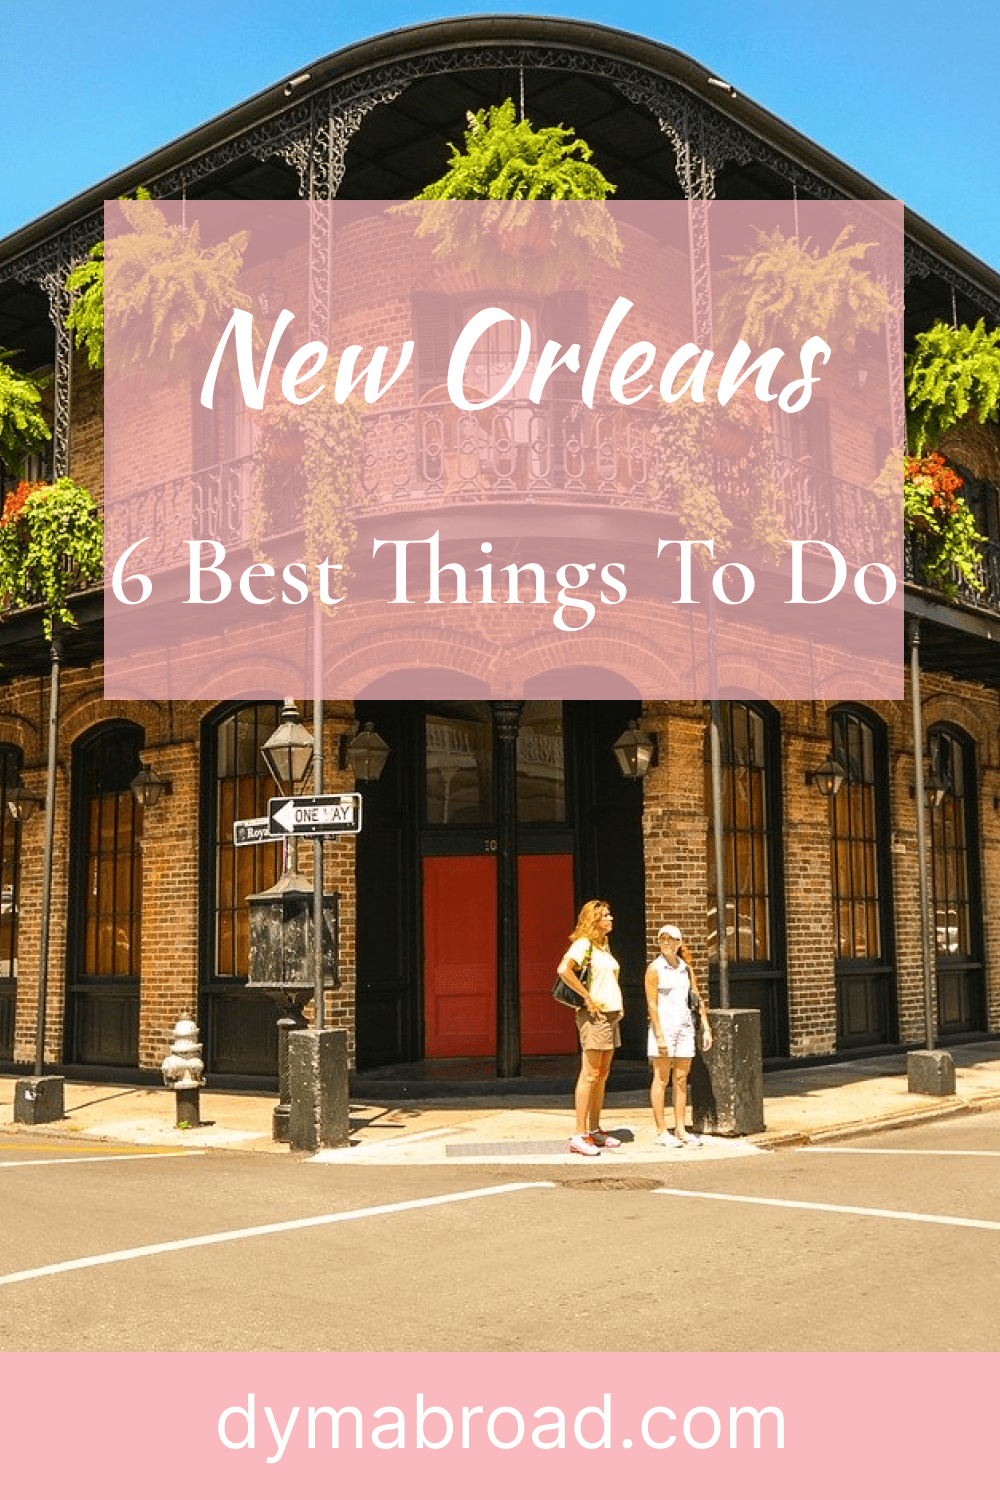 New Orleans 6 Best Things To Do